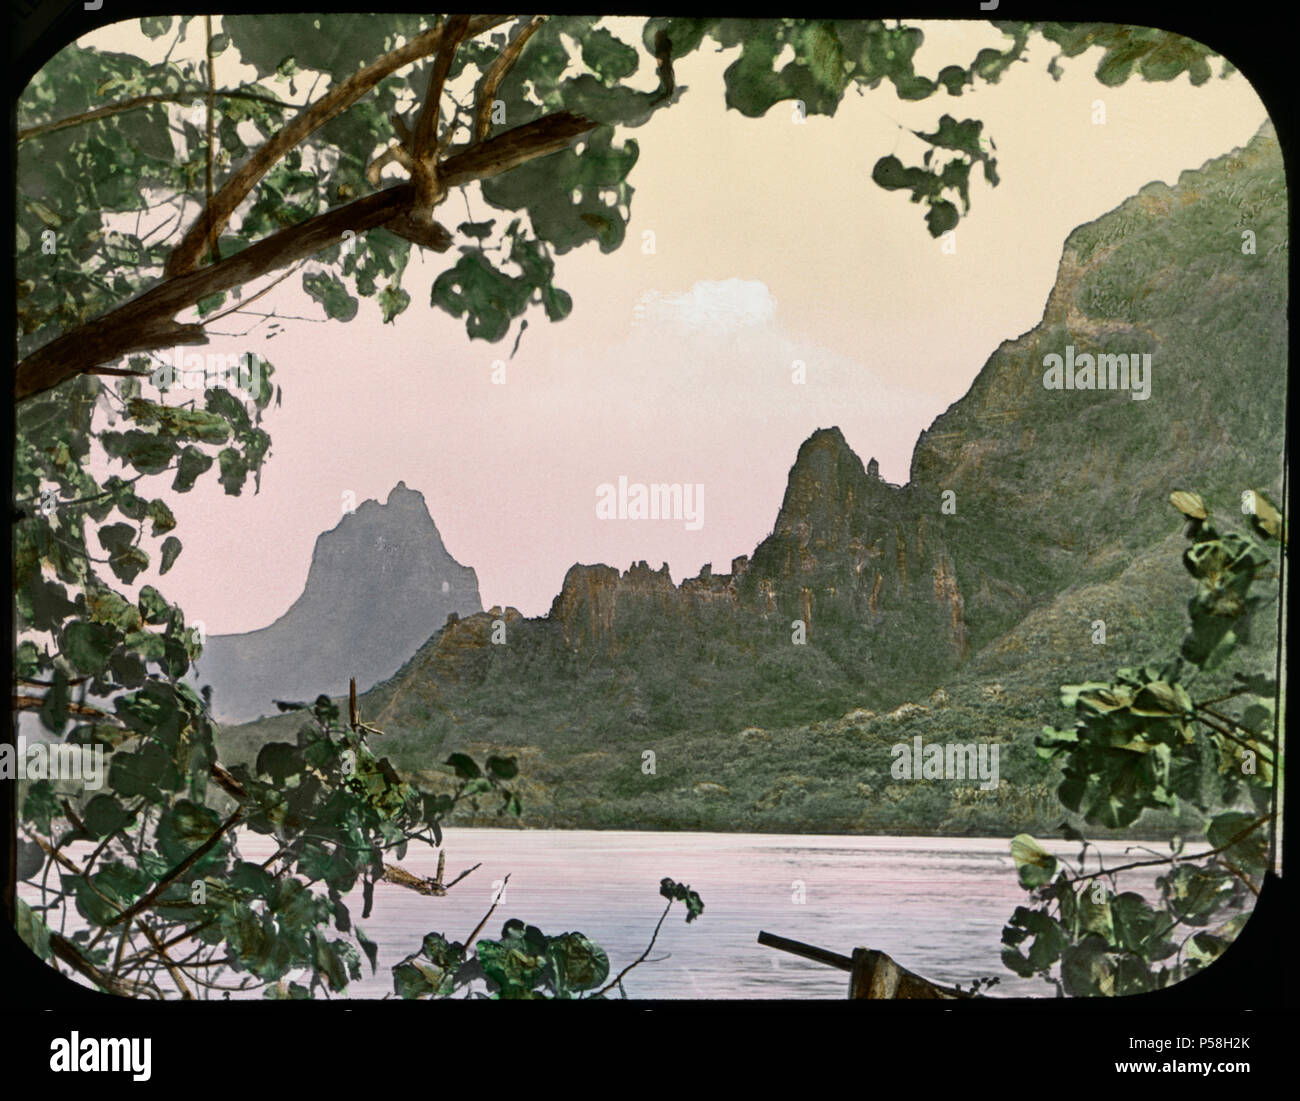 Cook's Bay, Moorea, South Pacific, Hand-Colored Magic Lantern Slide, Newton & Company, 1900 - Stock Image